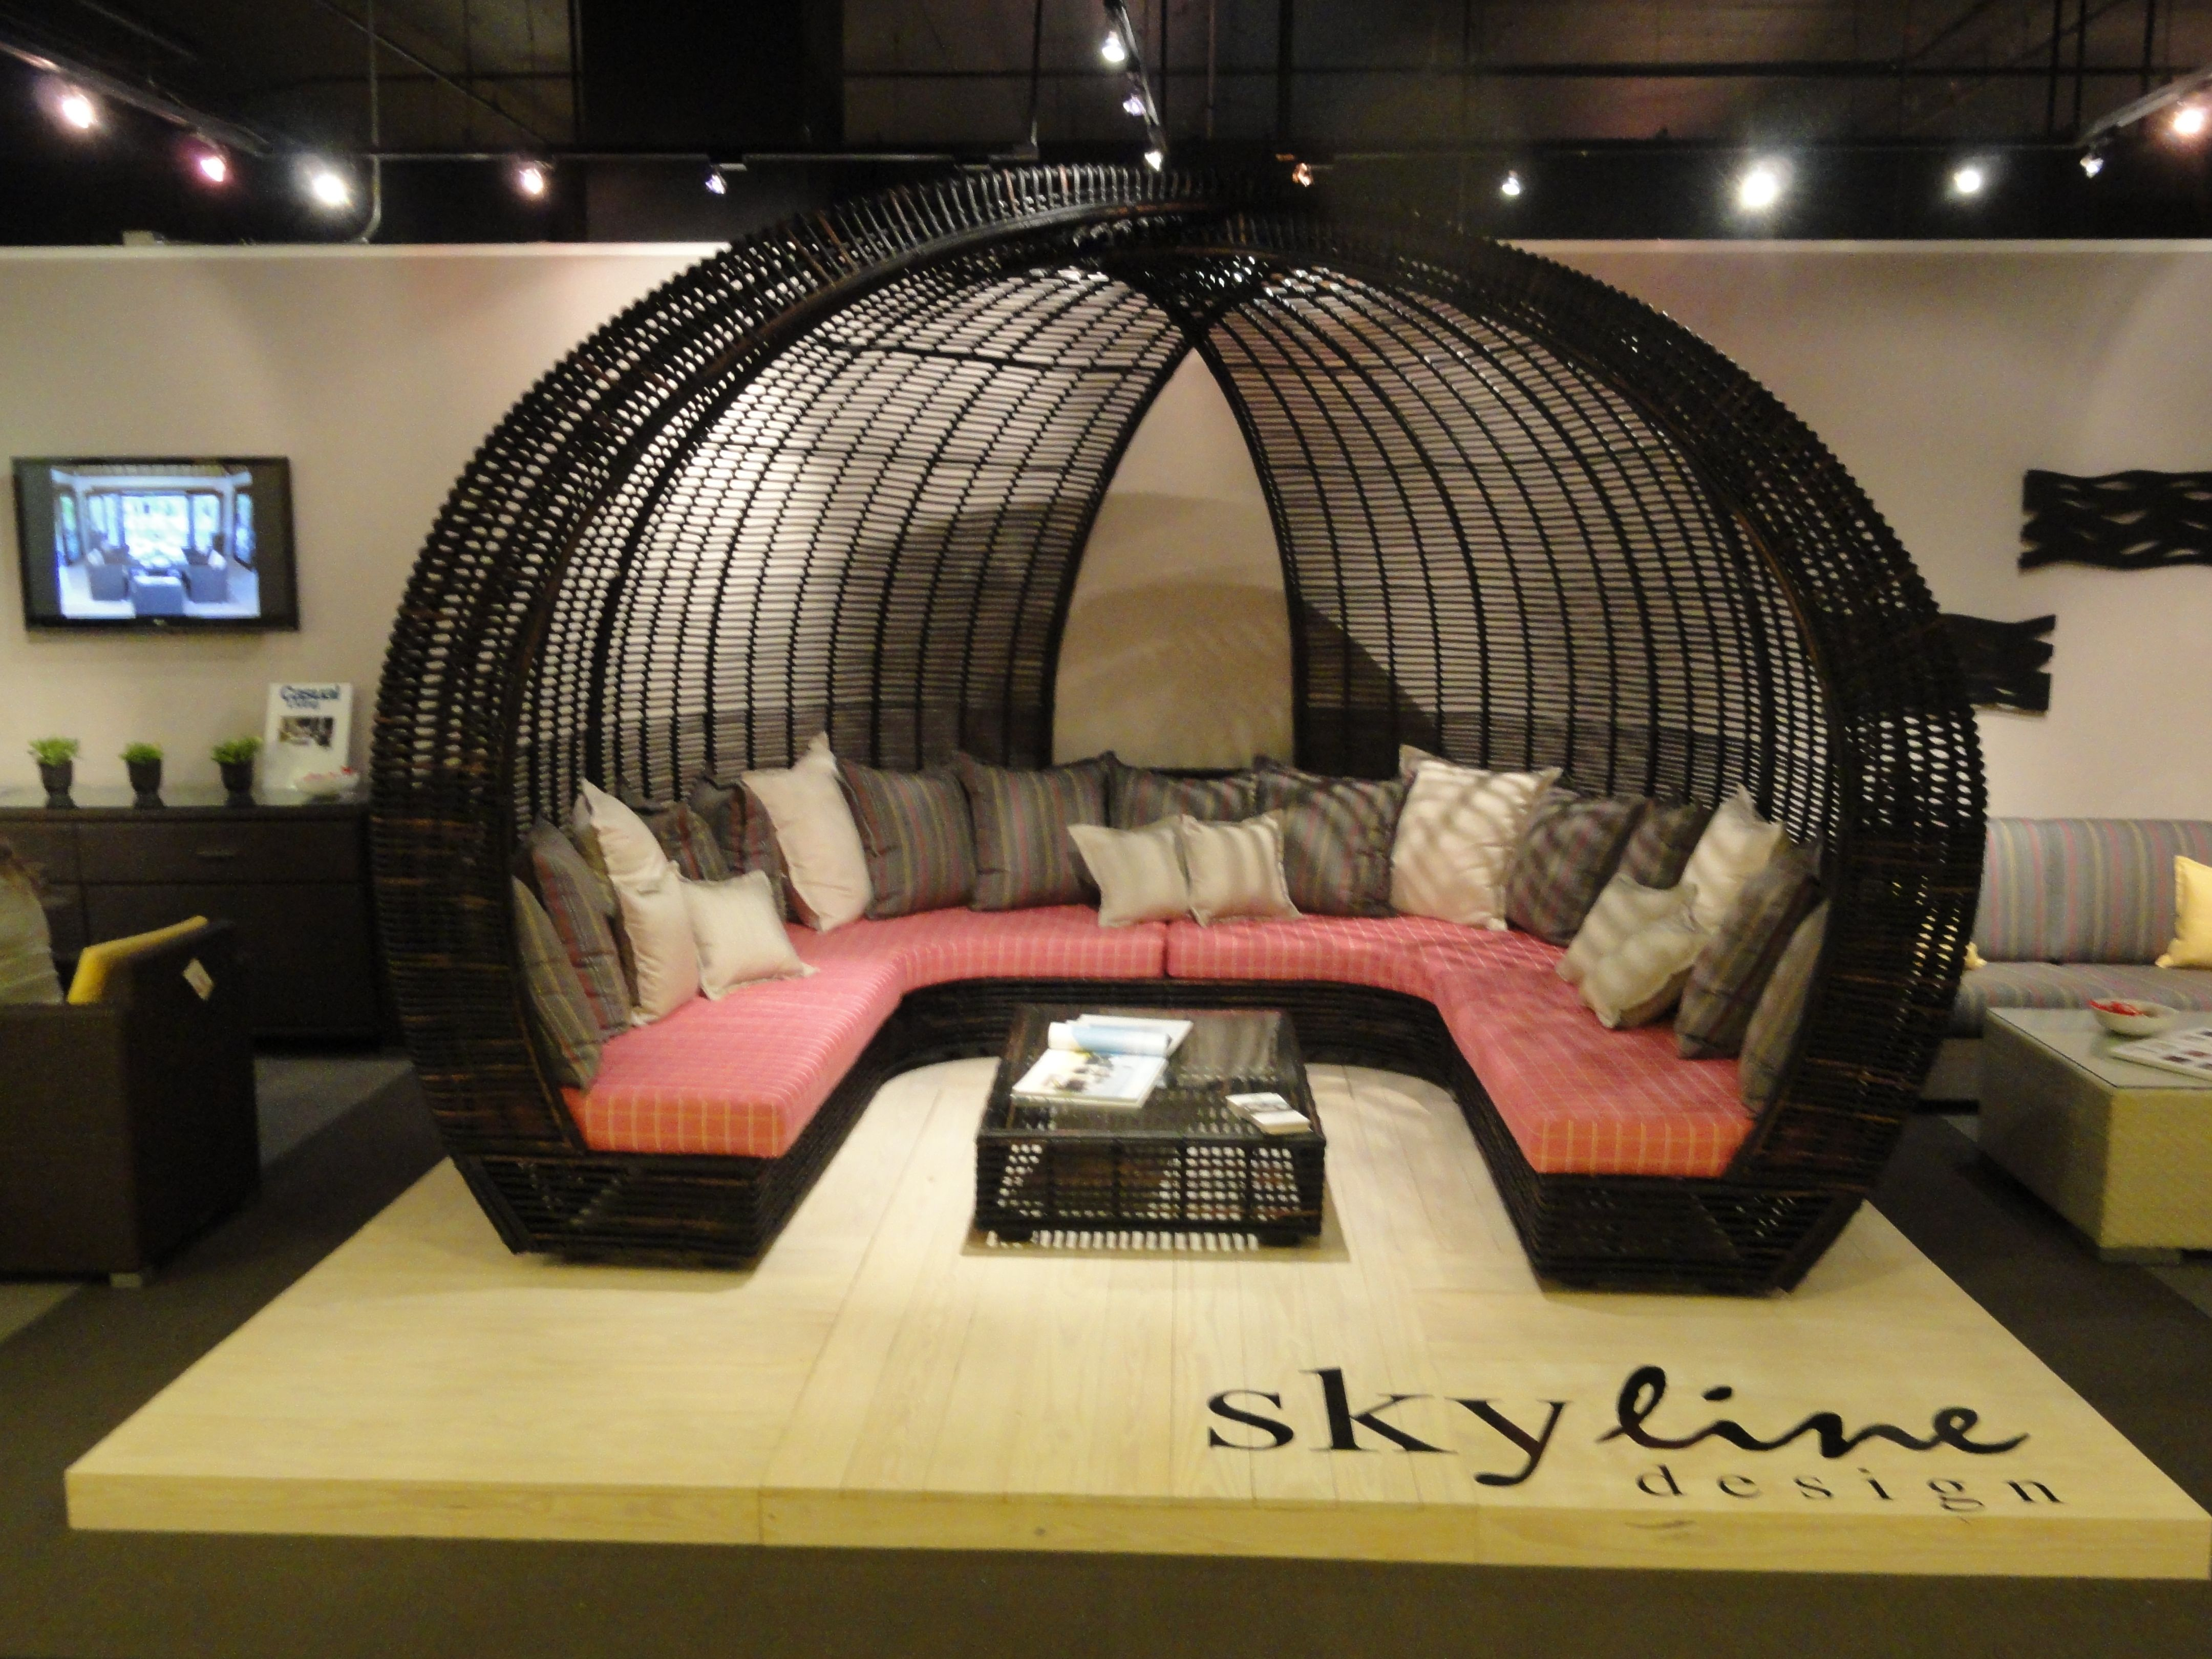 From Skyline Design The Sparta in Black Mushroom and ... on Sparta Outdoor Living id=15550